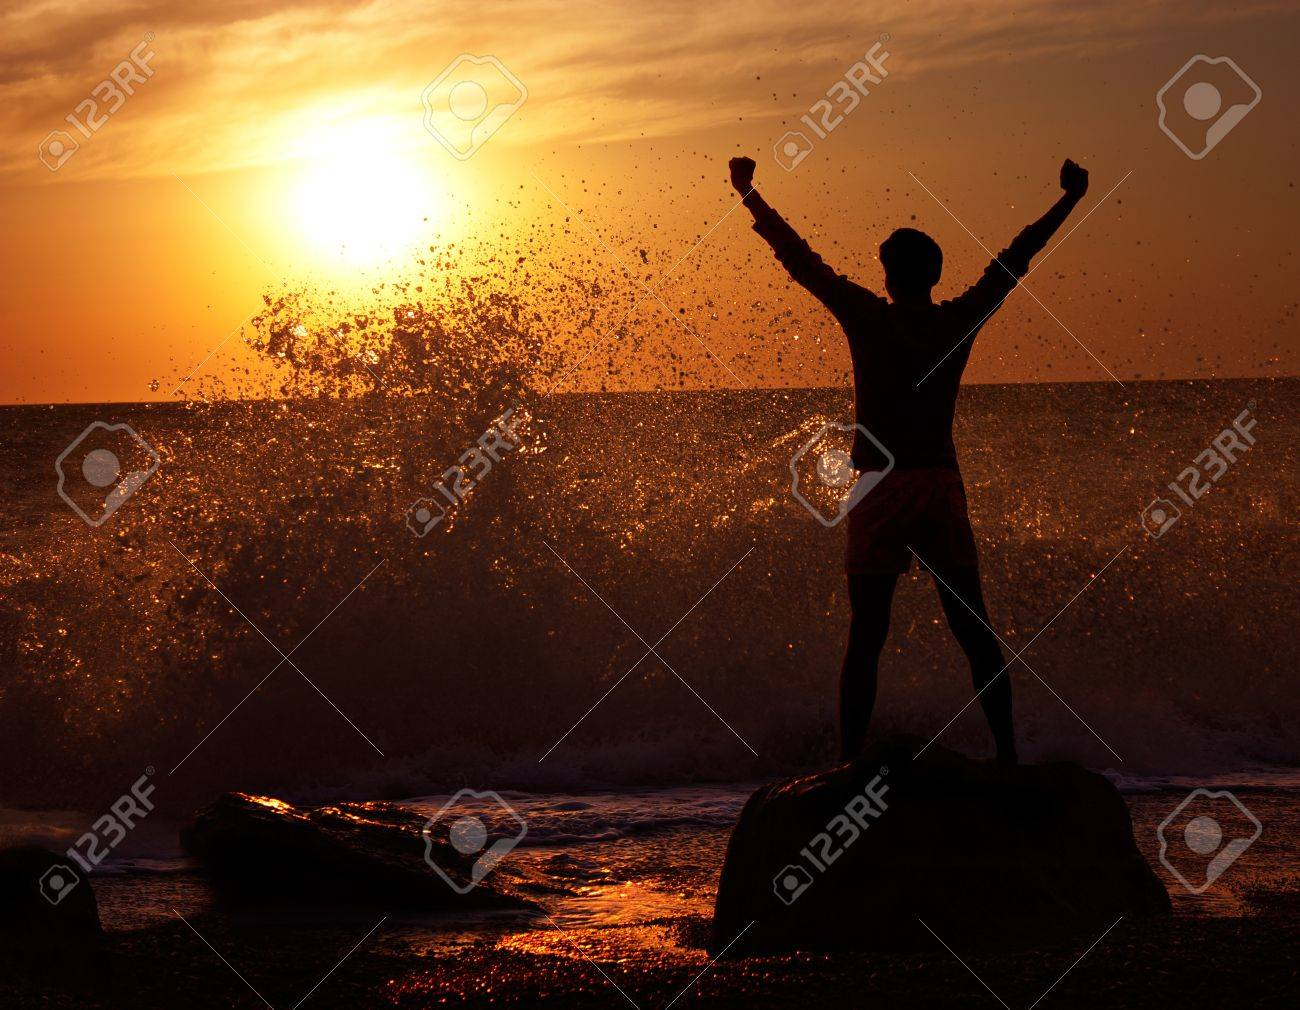 Silhouette of Man with Raised Hands at Stormy Sea  Freedom Concept Stock Photo - 15886965